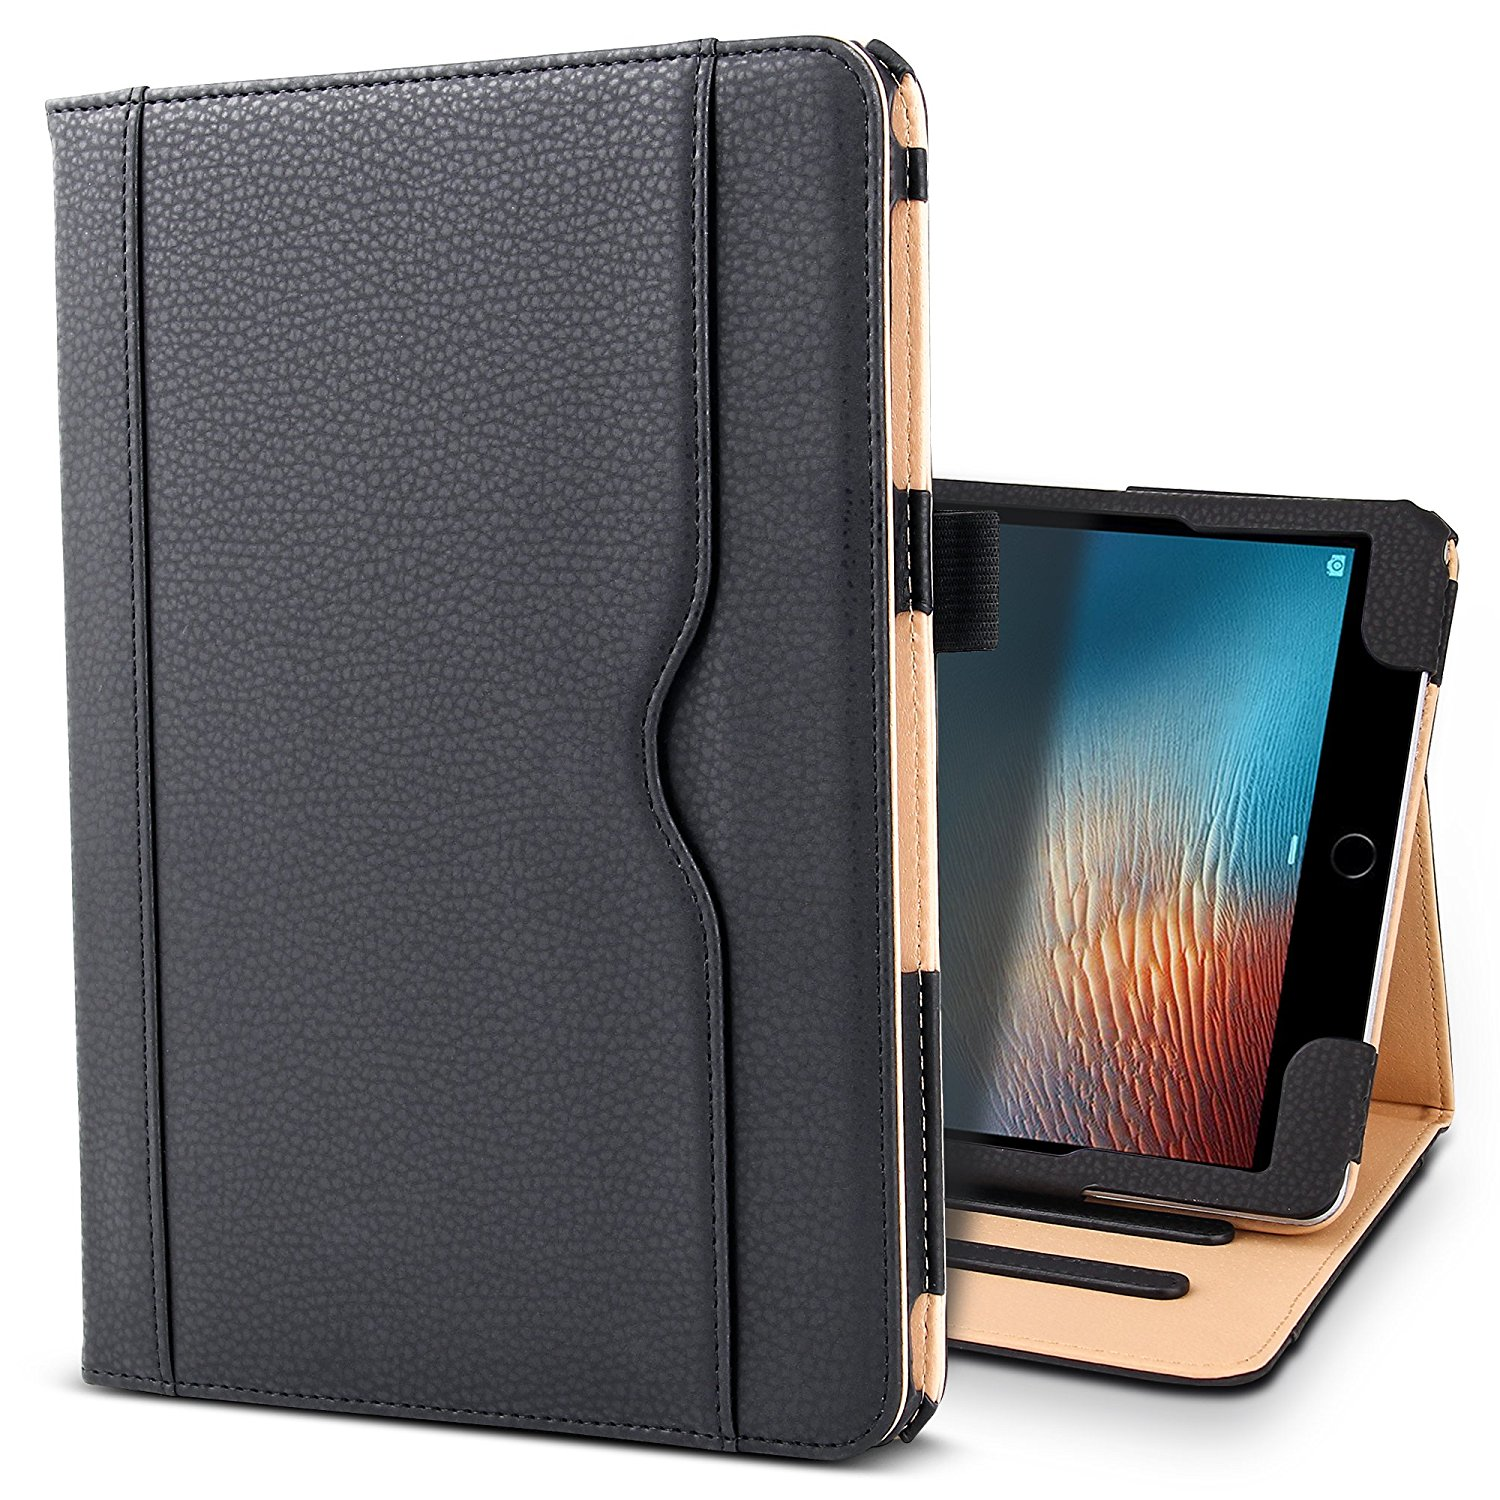 Case For New iPad Pro 10.5 2017 Premium PU Leather Case Smart Cover for iPad pro 10.5 Stand Case with Pencil Holder+Card Pocket